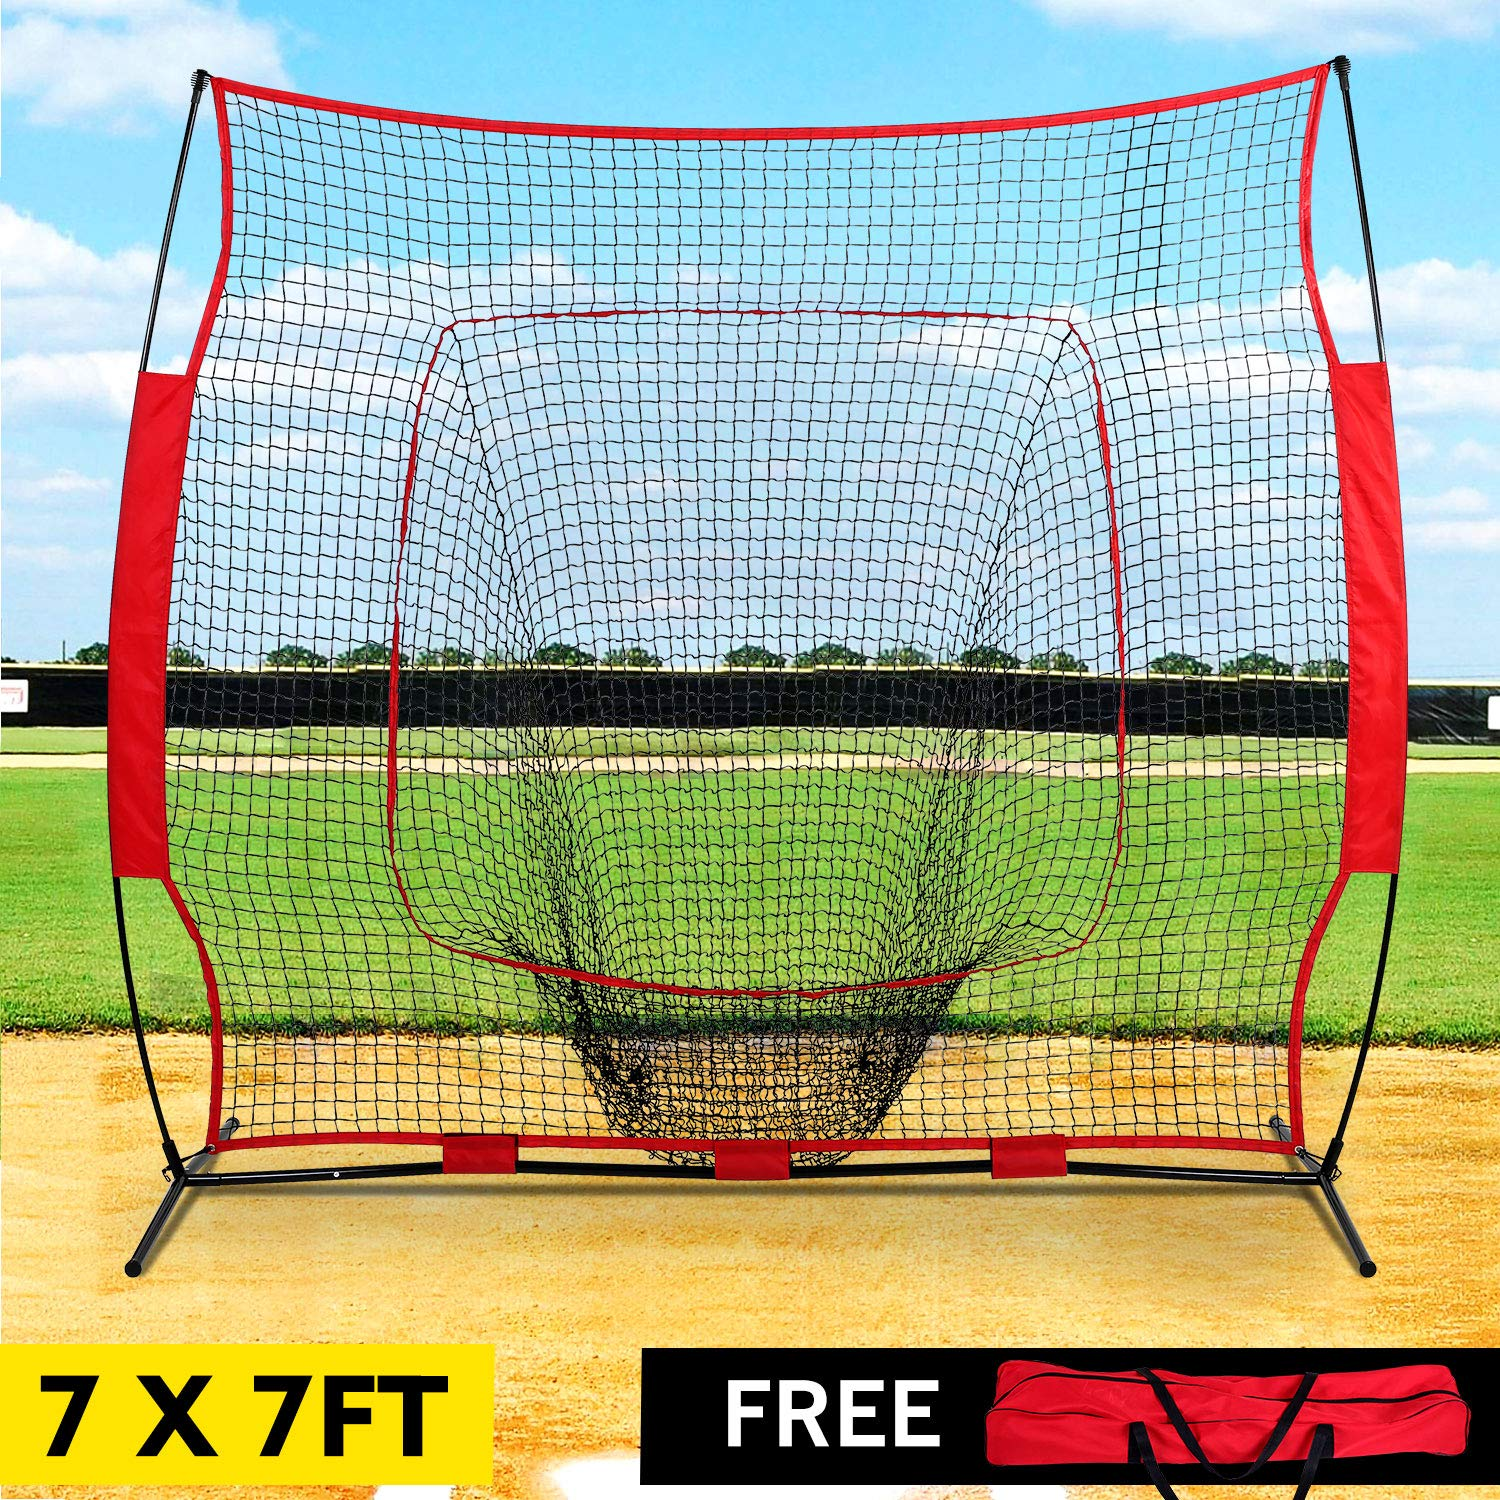 GALILEO Ball Caddy for Baseball Softball Portable Batting Practice Training with Carry Bag Outdoor Sports for Men Women Youth